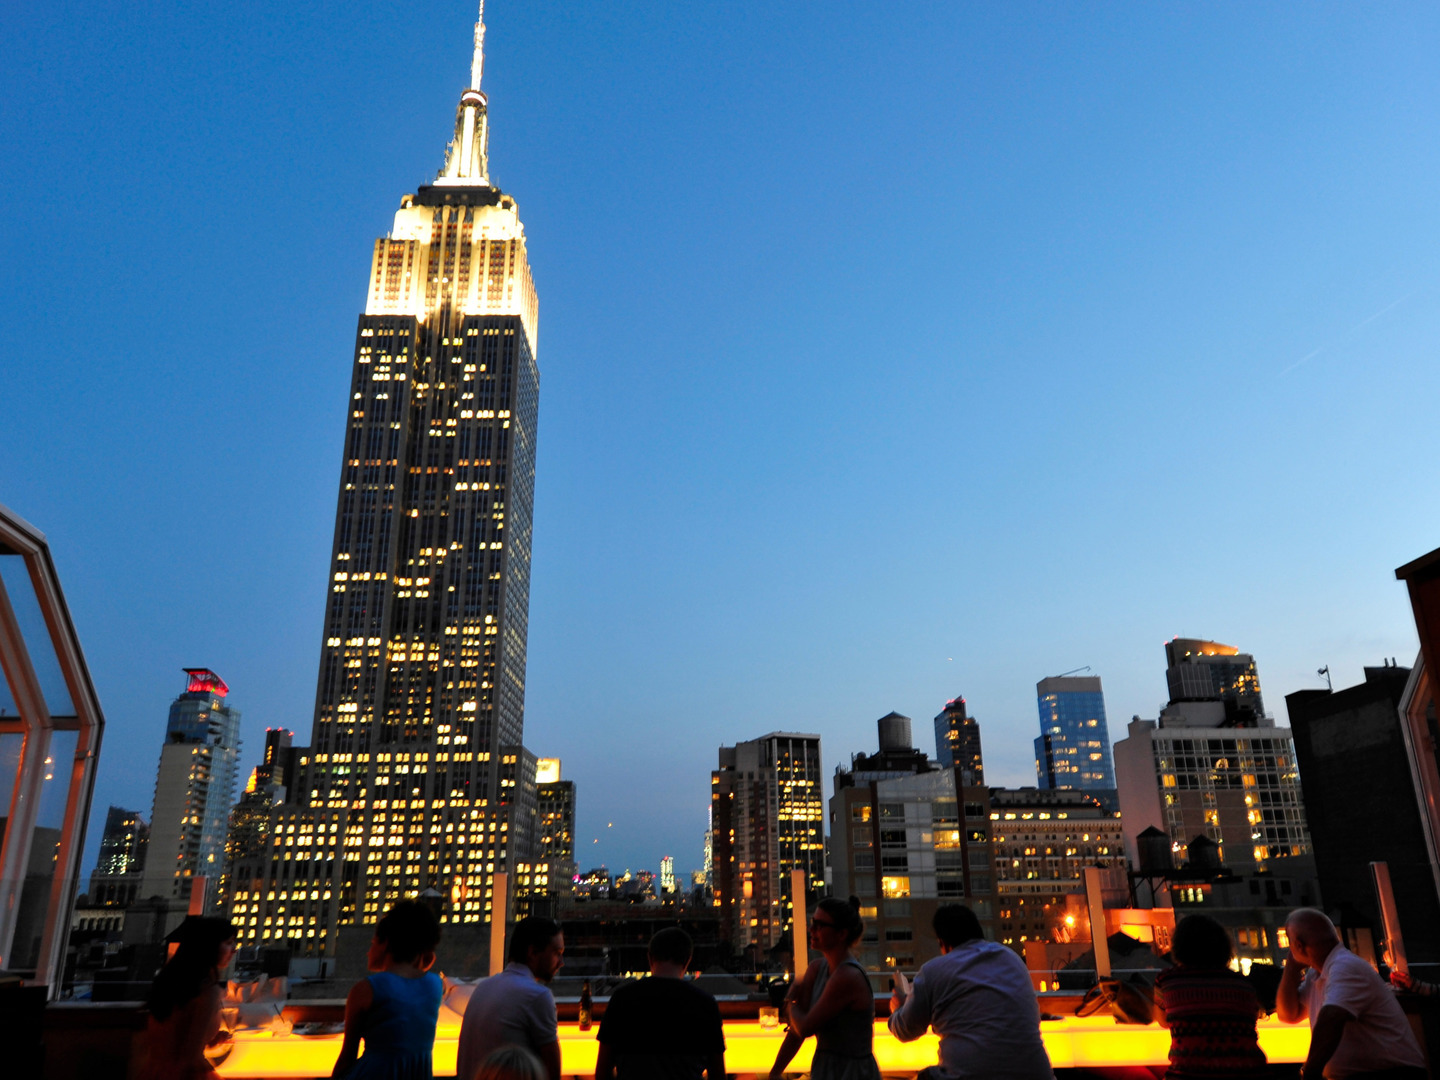 Marriott Vacation Club Pulse<span class='trademark'>®</span>, New York City Top of the Strand. Marriott Vacation Club Pulse<span class='trademark'>®</span>, New York City is located in New York City, New York United States.